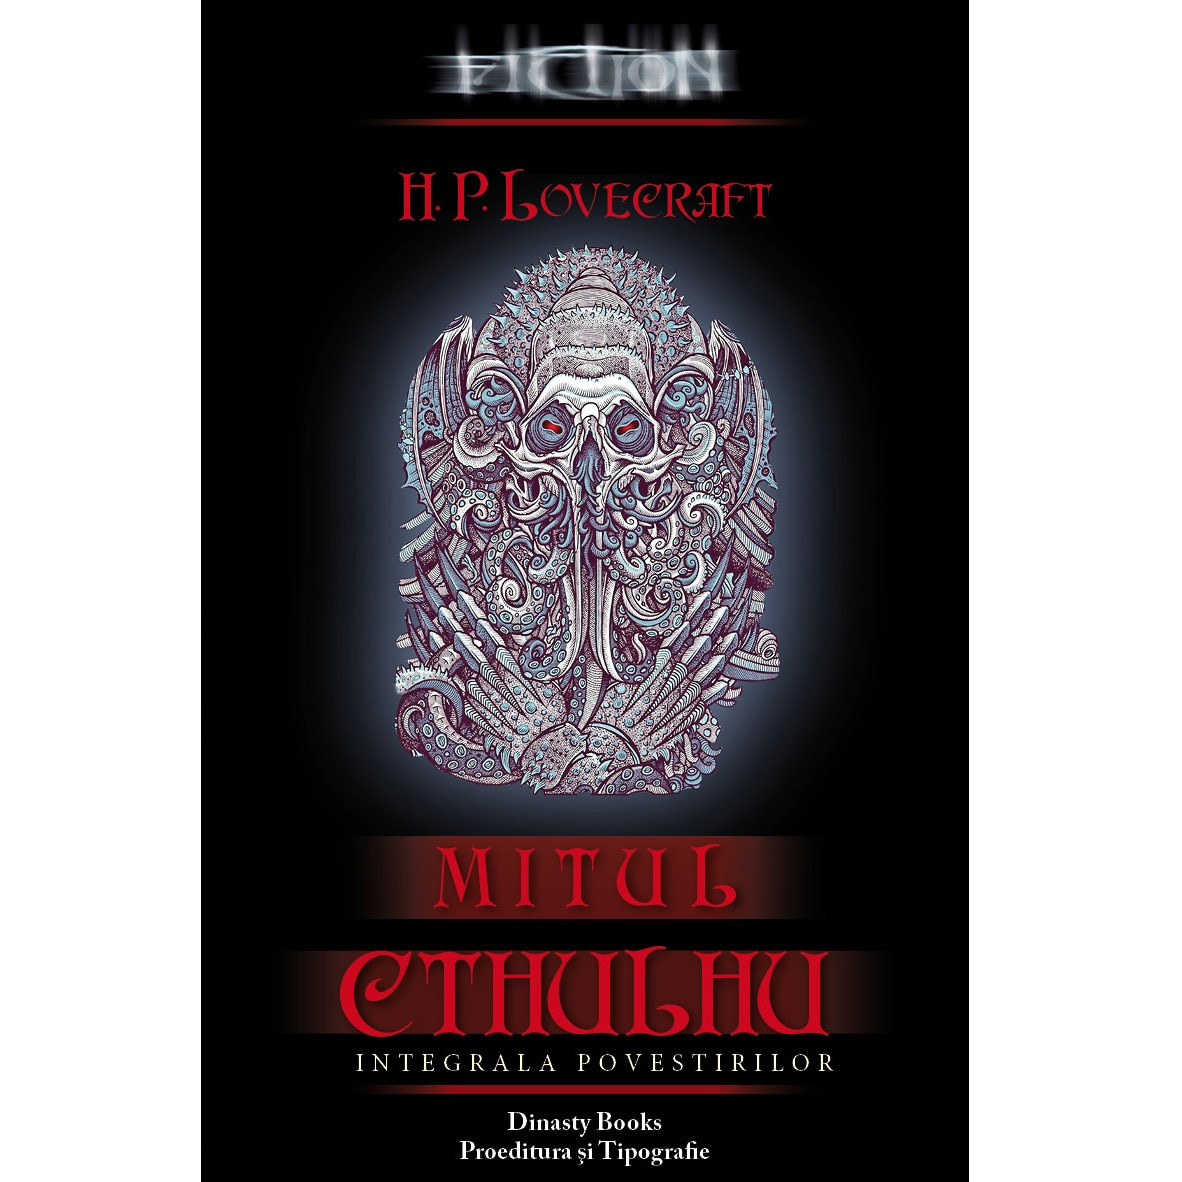 Mitul Cthulhu - H.P.Lovecraft - eMAG.ro